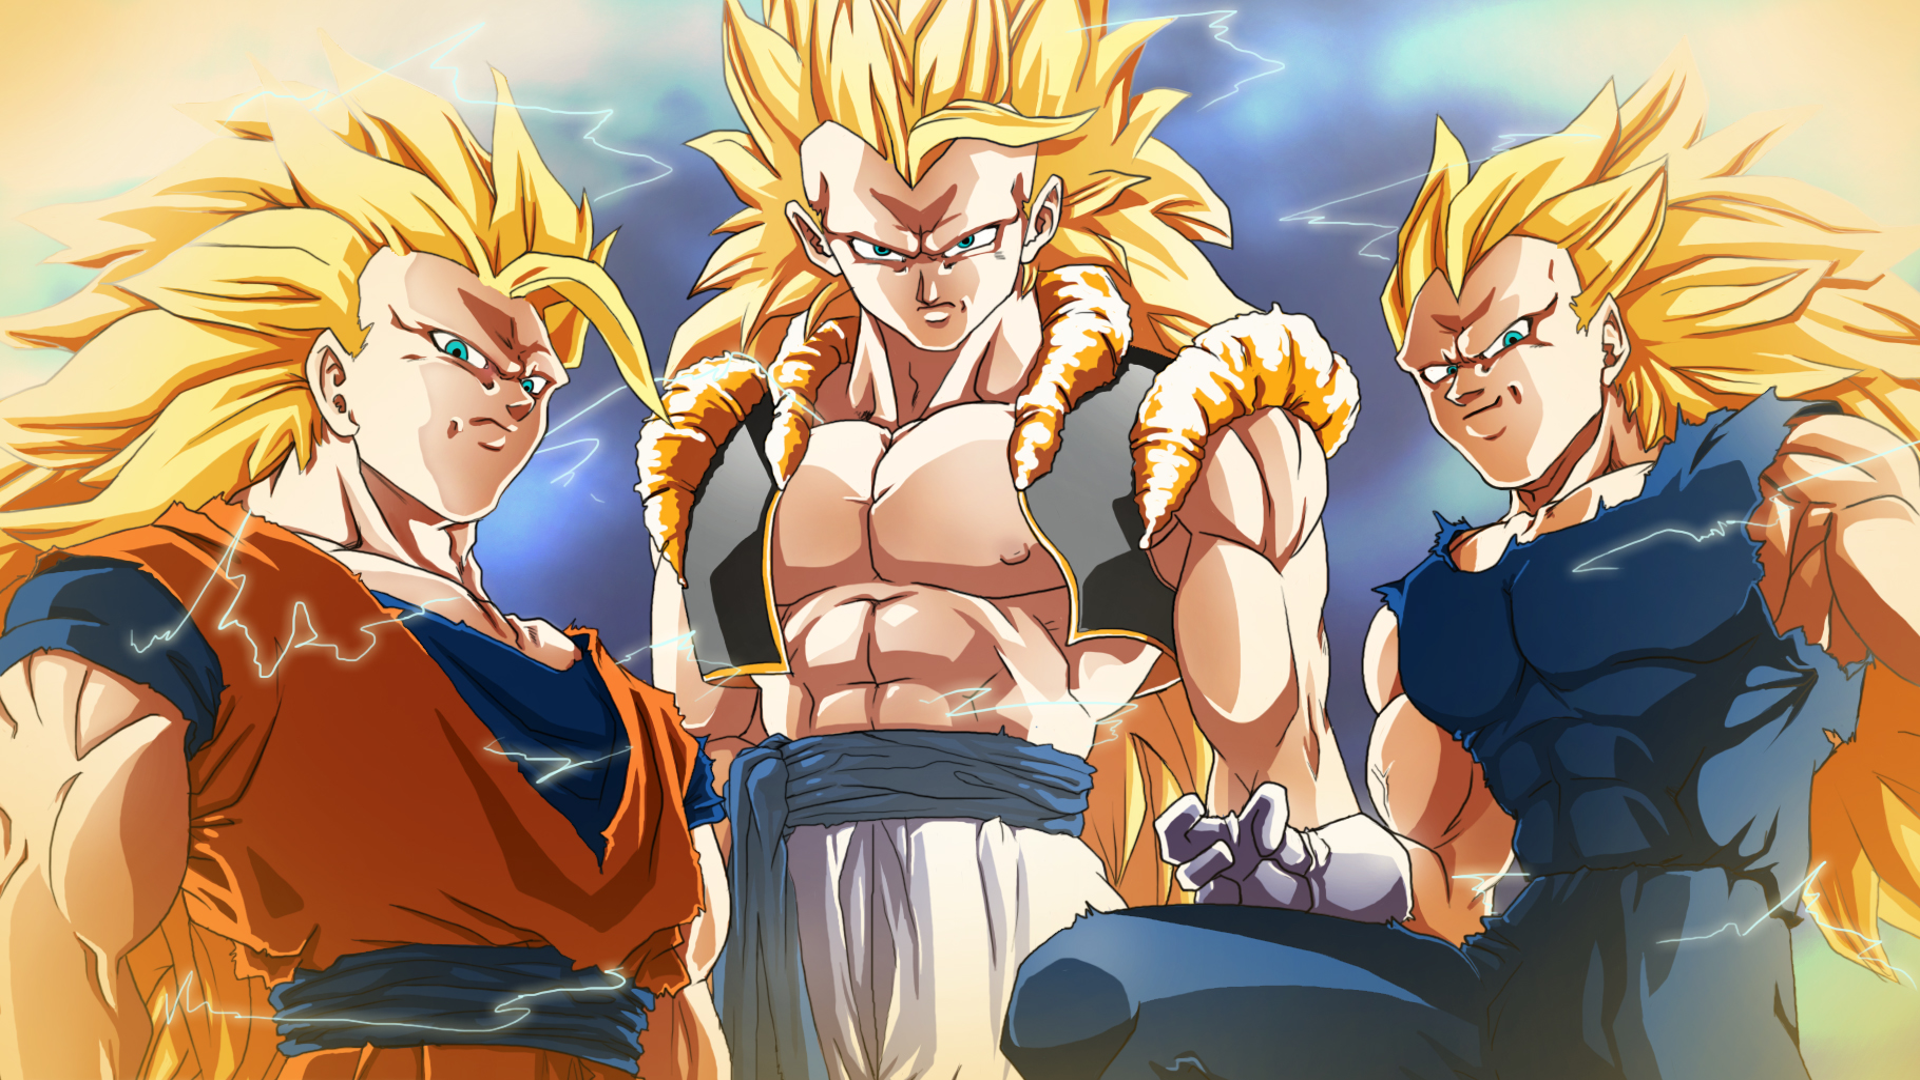 Dragon ball z poster 9 full hd wallpaper and background image anime dragon ball z goku anime super saiyan gogeta dragon ball super saiyan voltagebd